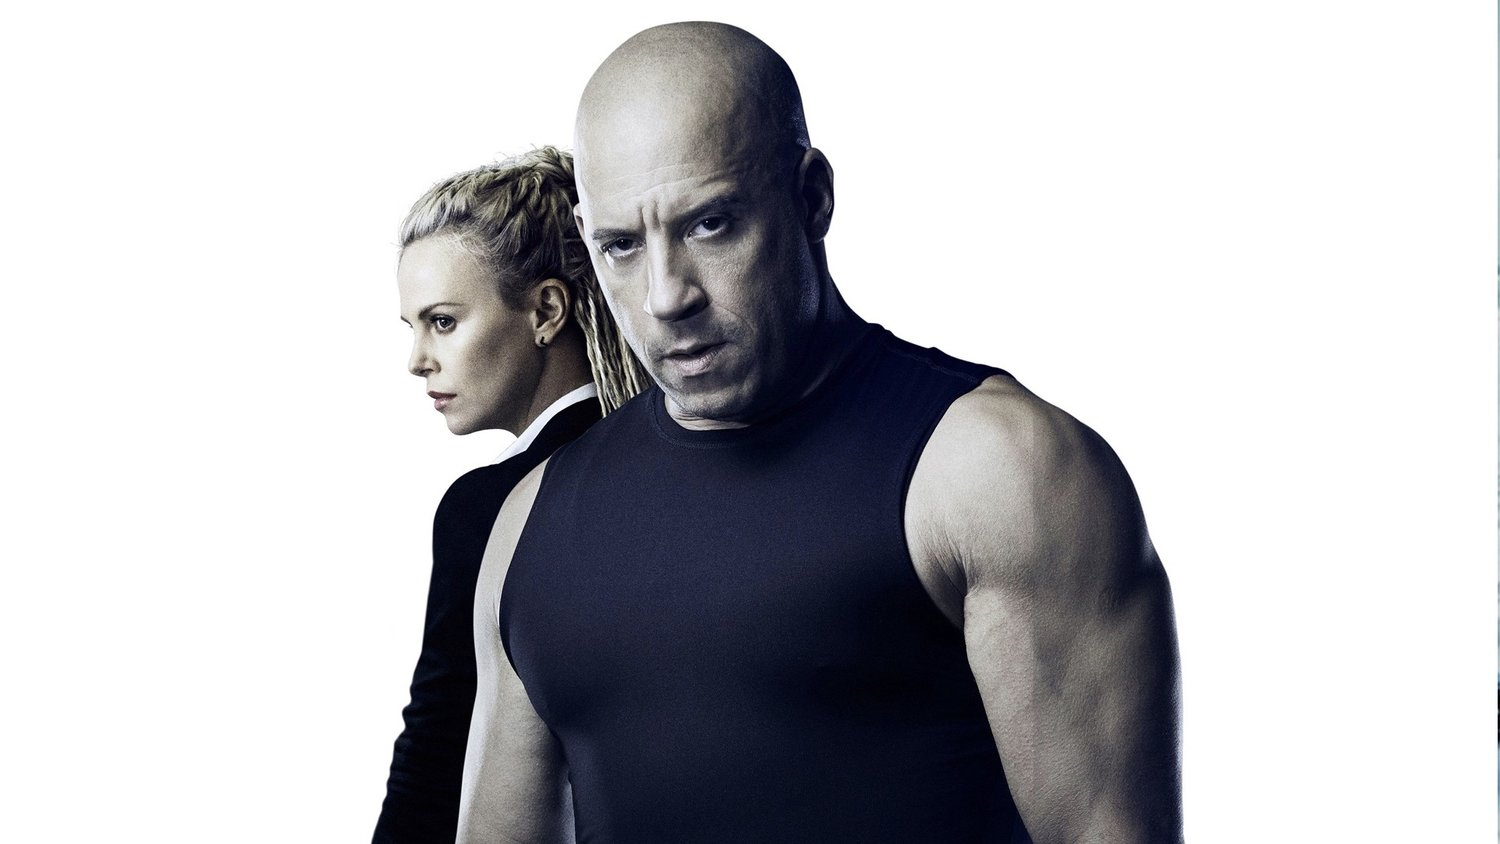 Video Review: THE FATE OF THE FURIOUS Is the Most Insane, Over-the-Top Film in the Franchise